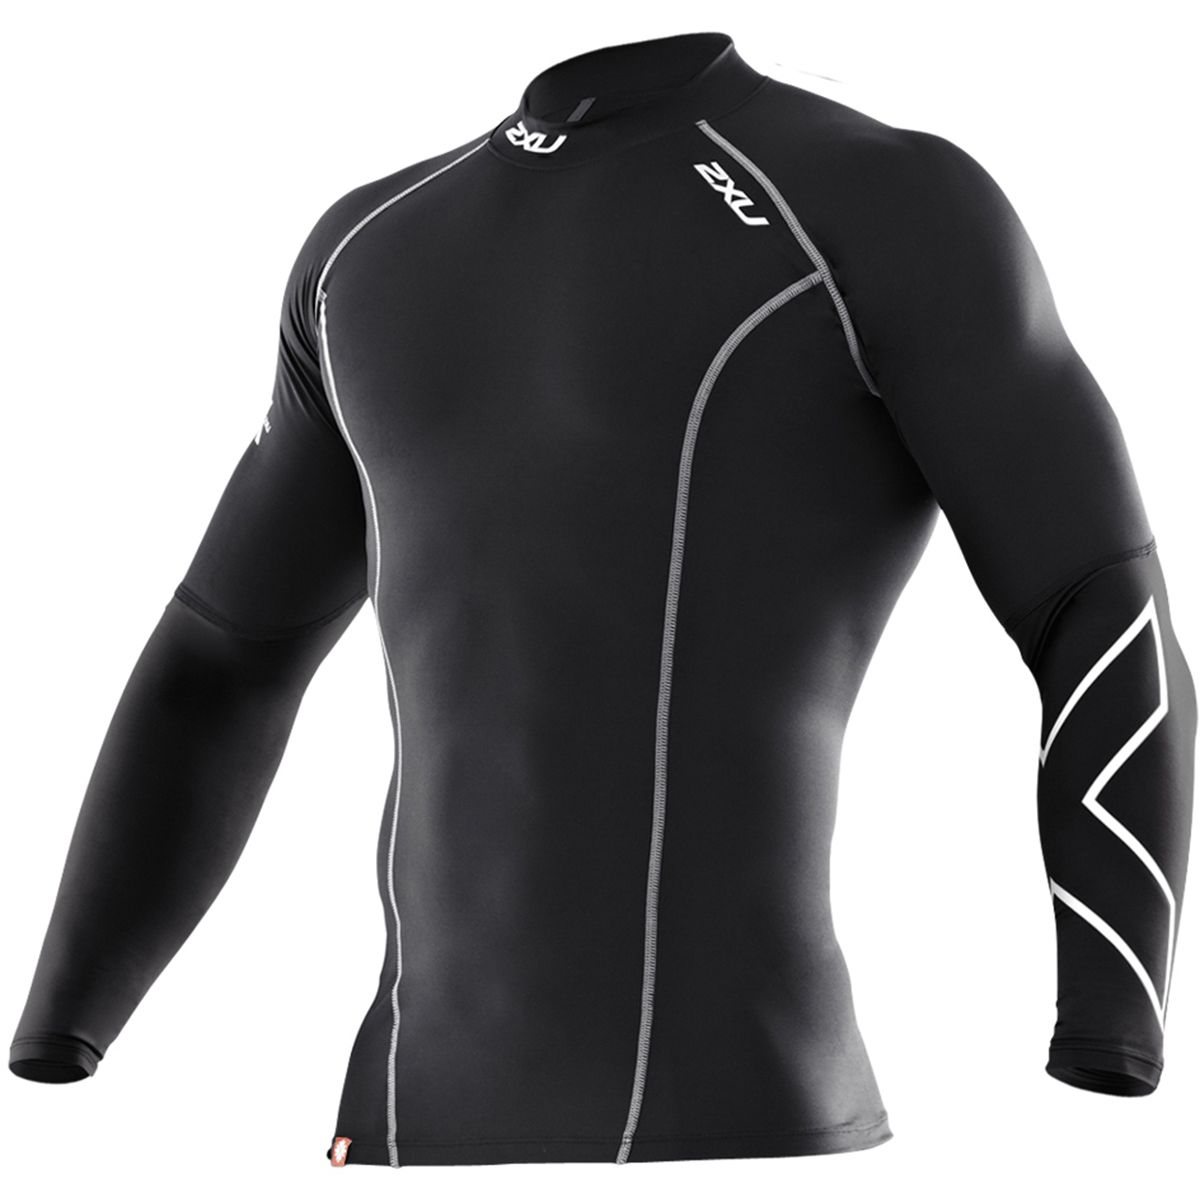 2xu thermal compression top long sleeve men 39 s for Best long sleeve shirts for men